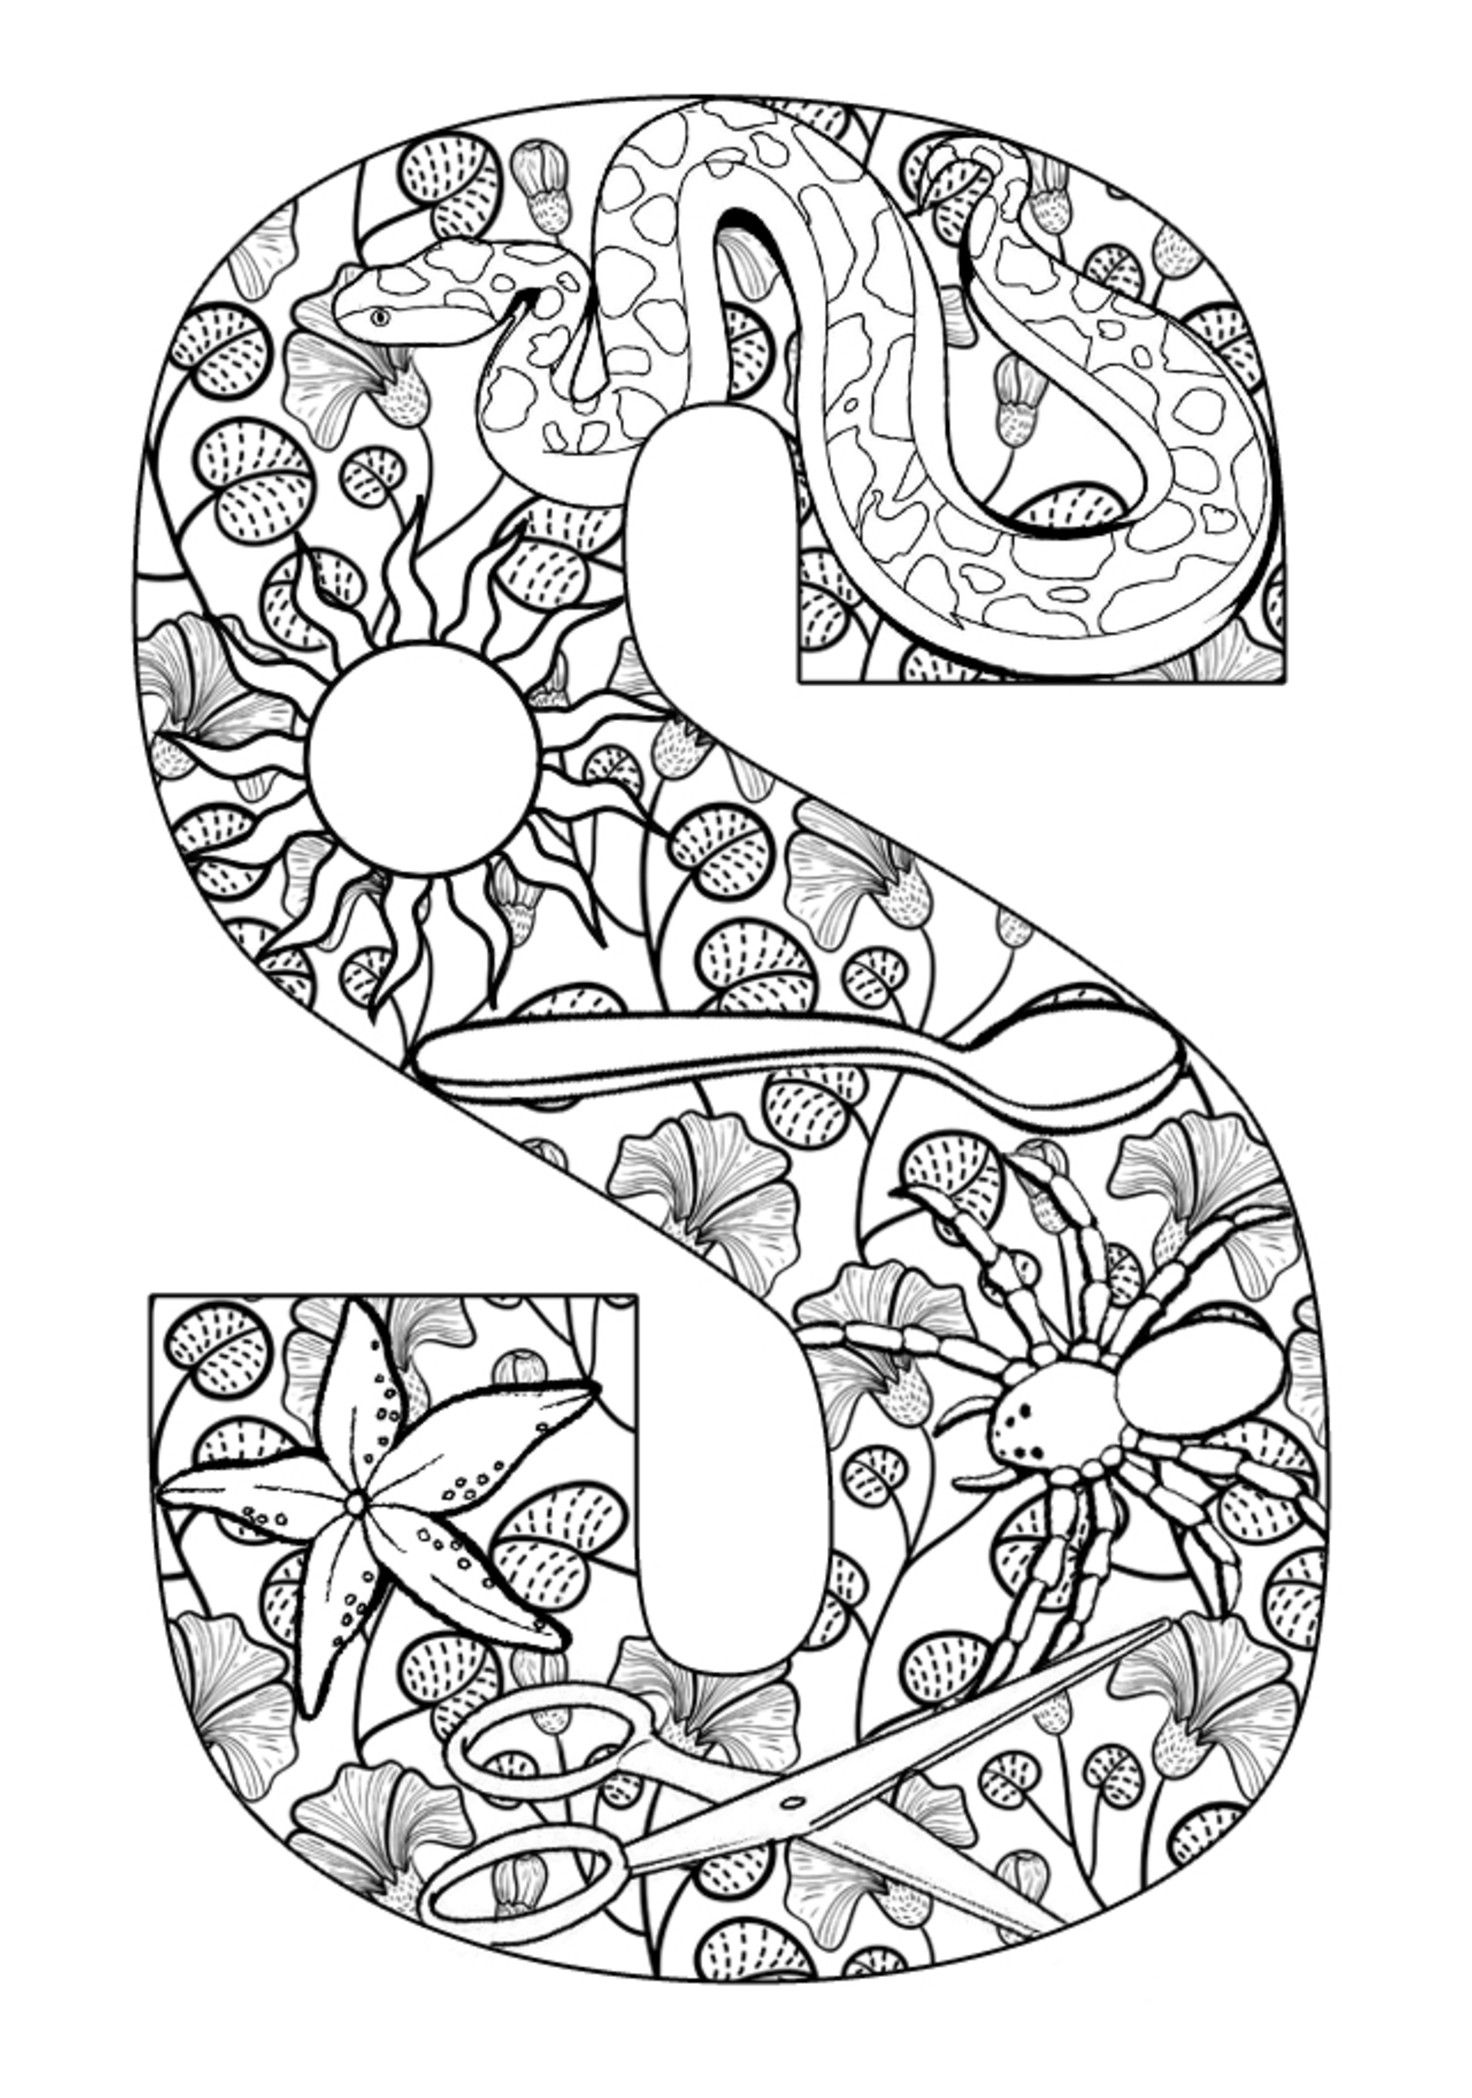 Teach Your Kids their ABCs the Easy Way With Free Printables | Mandalas